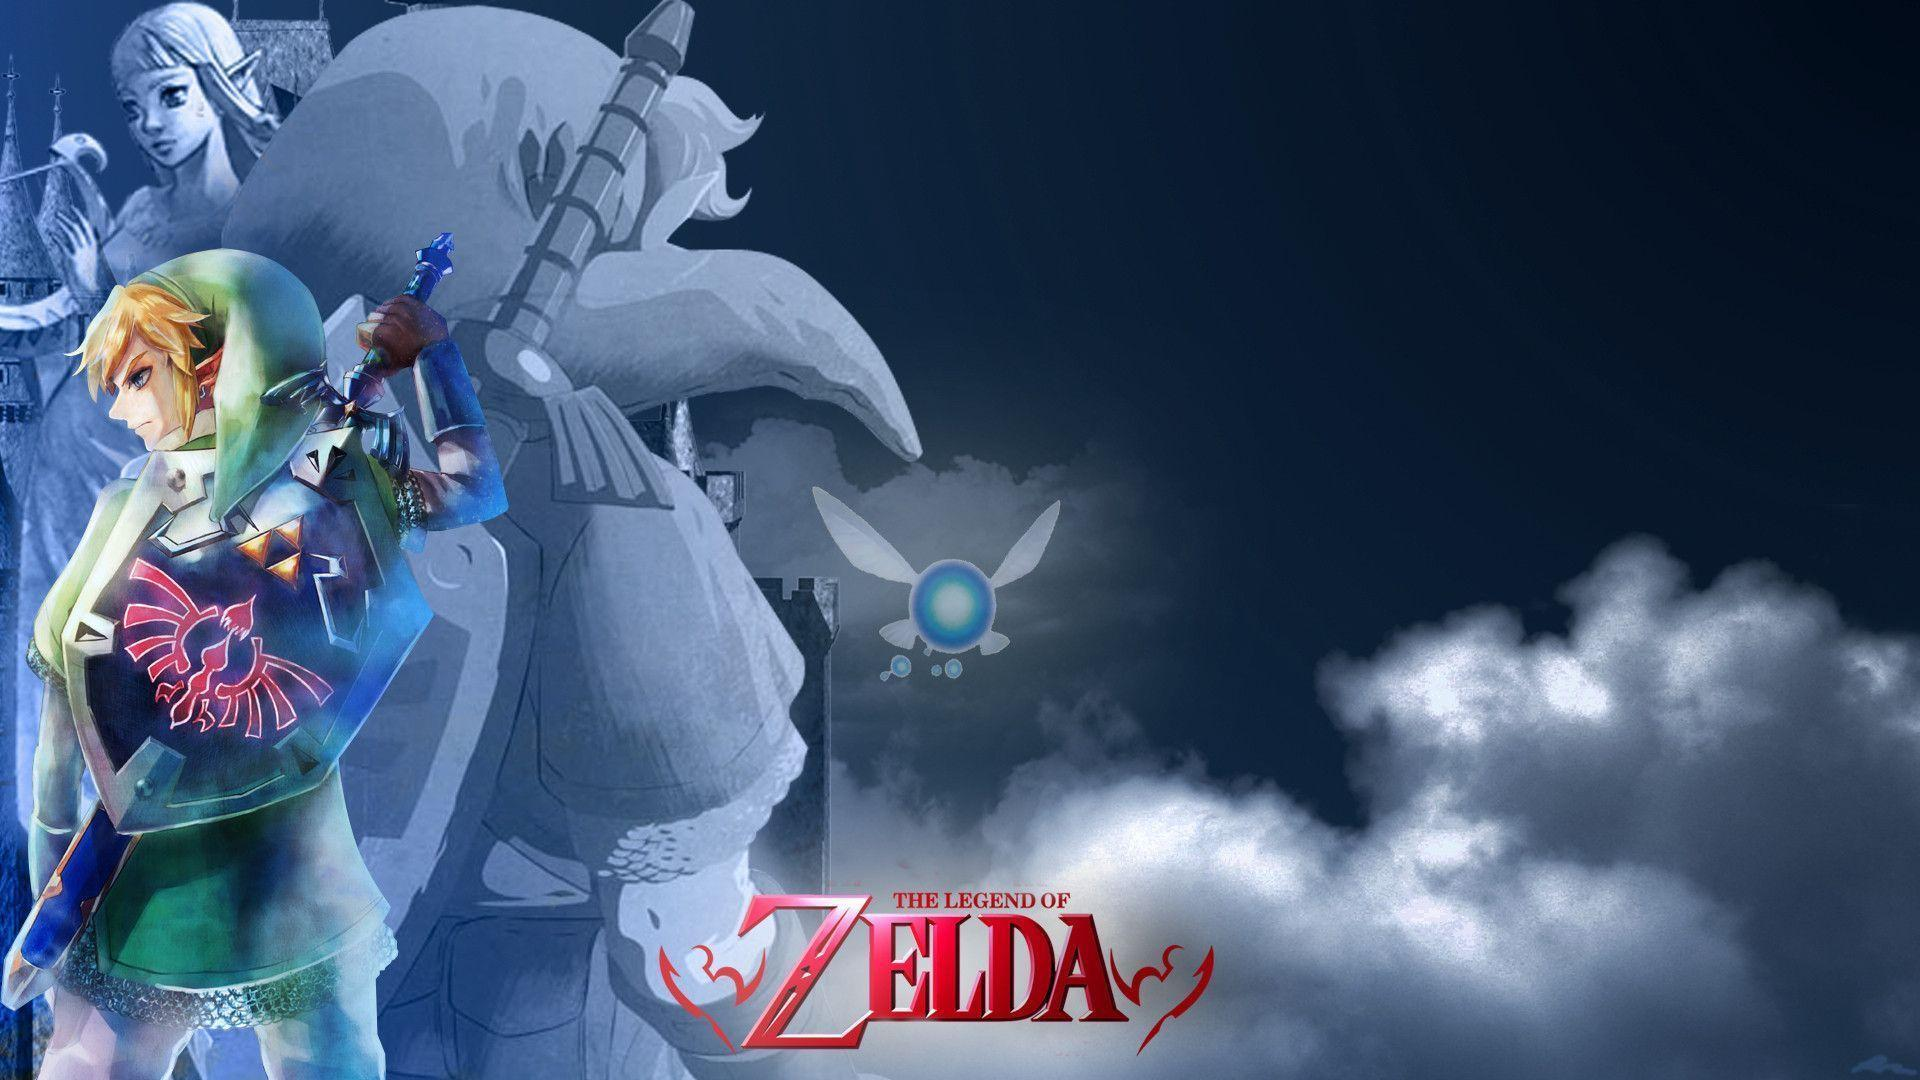 hd zelda wallpapers - photo #43